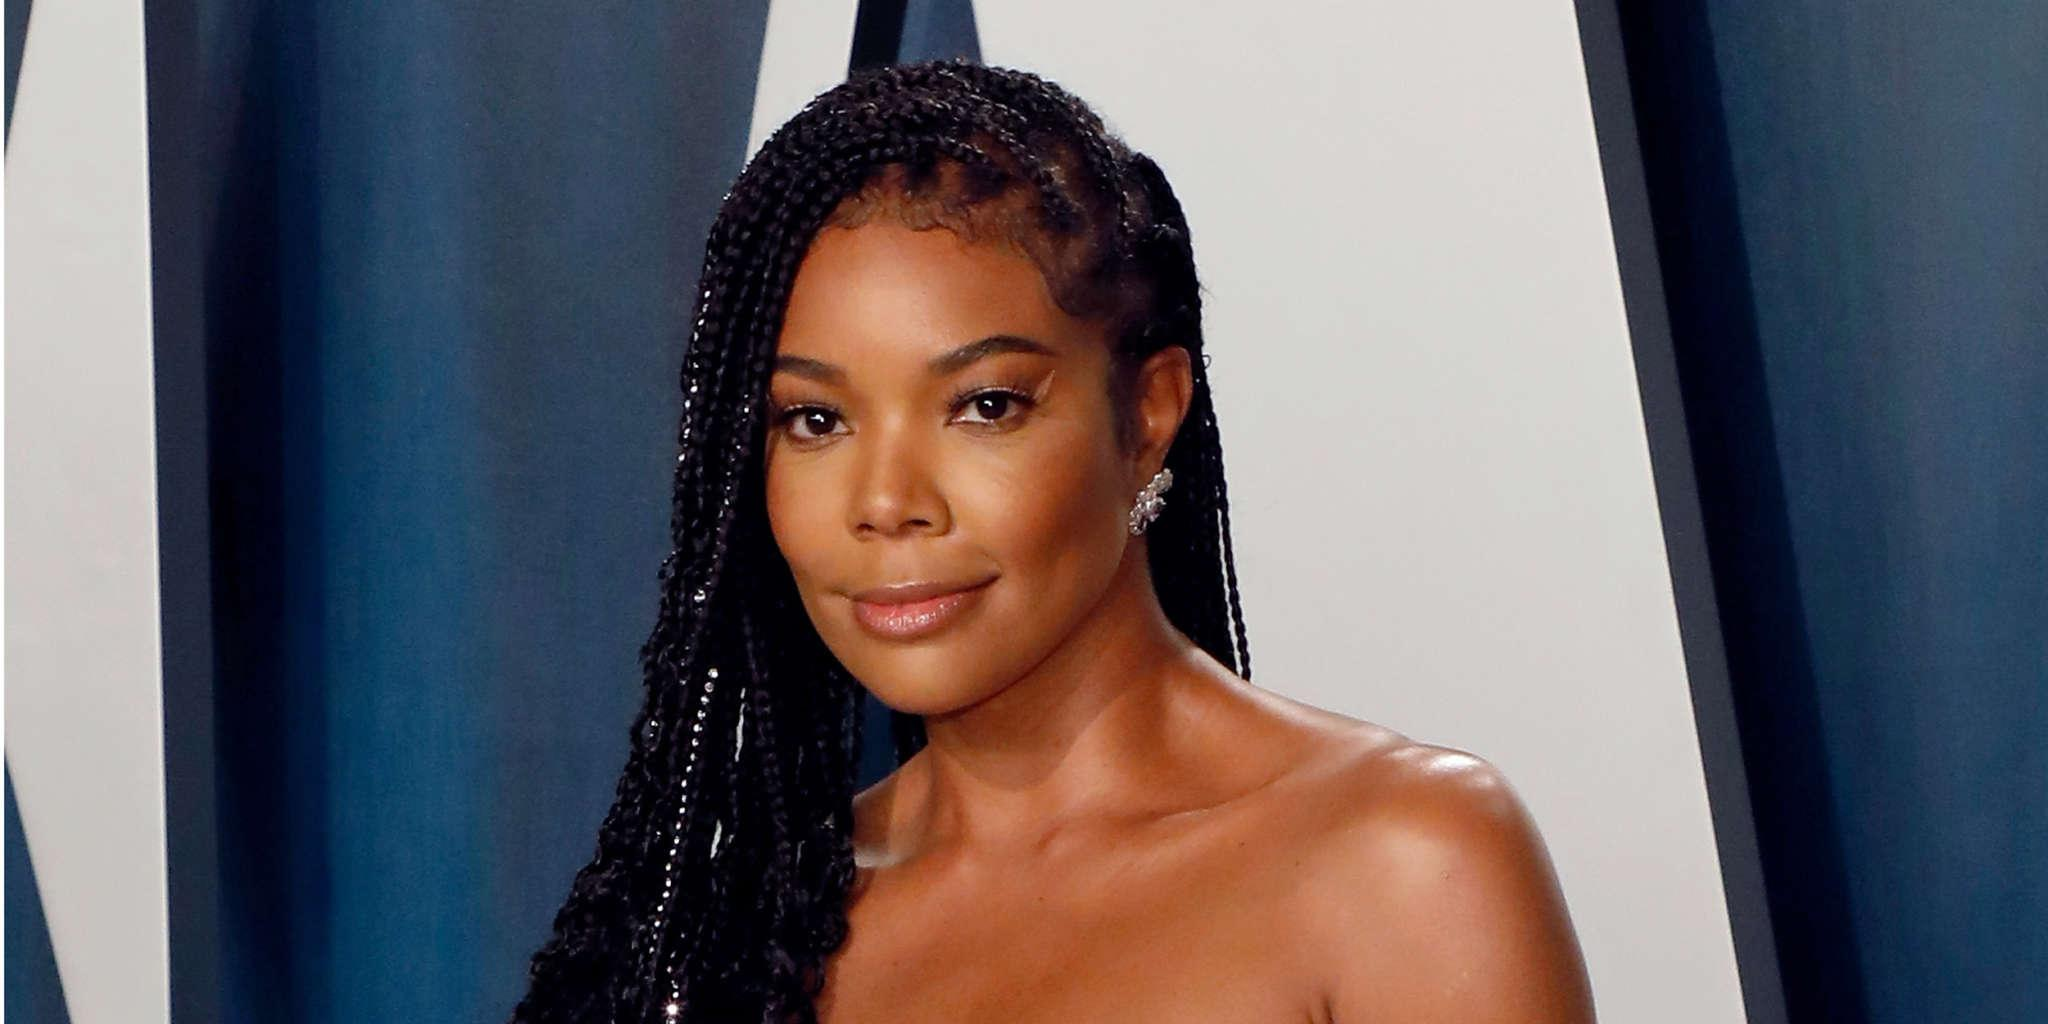 Gabrielle Union Shows Off Her Curves At The Pool And Fans Are Here For This